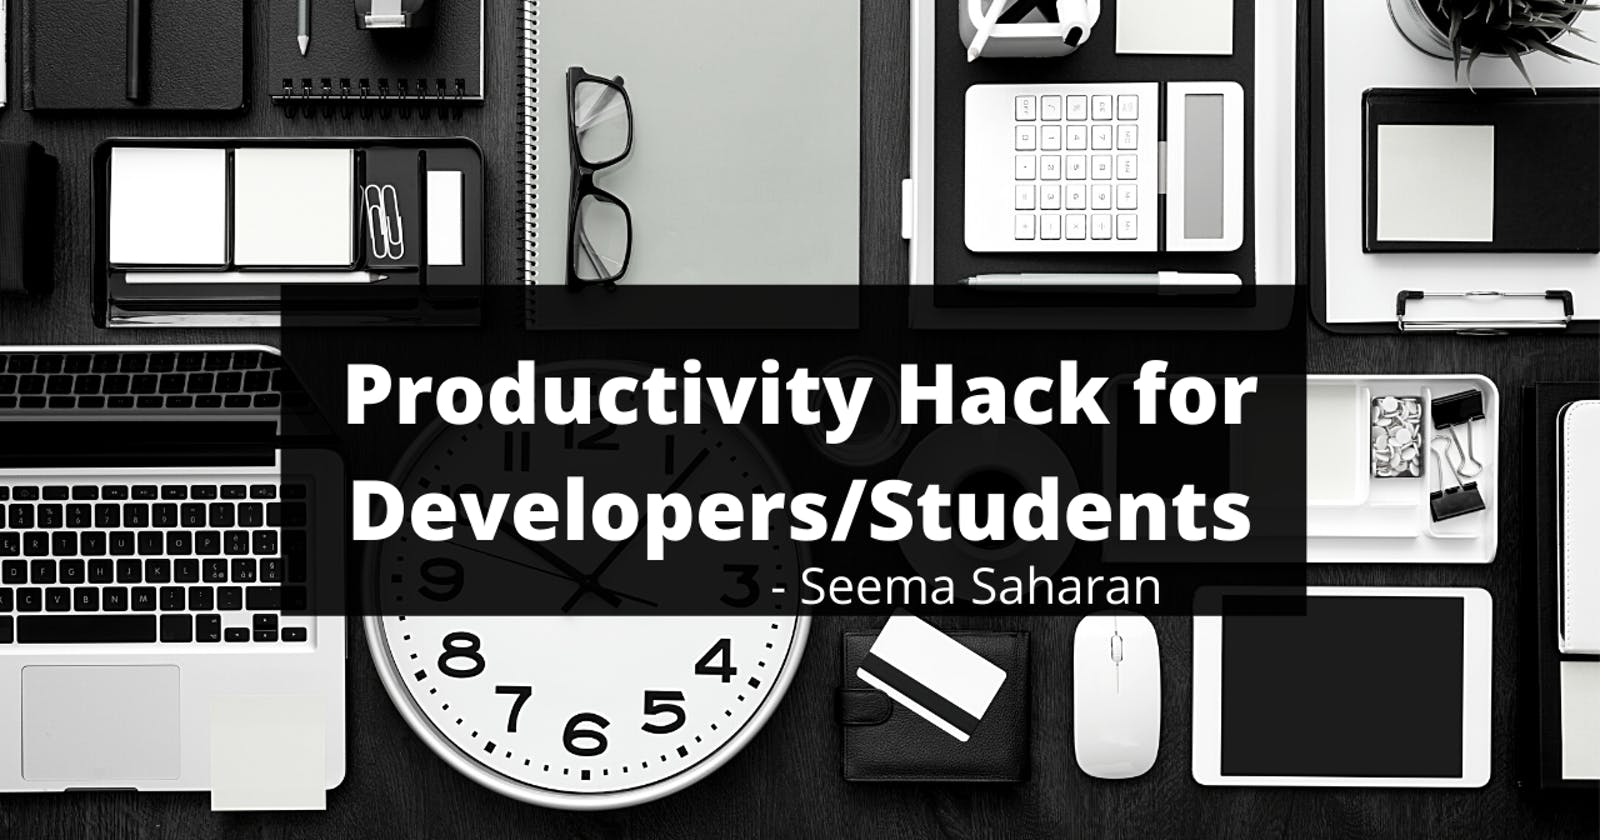 Productivity Hack for Developers/Students